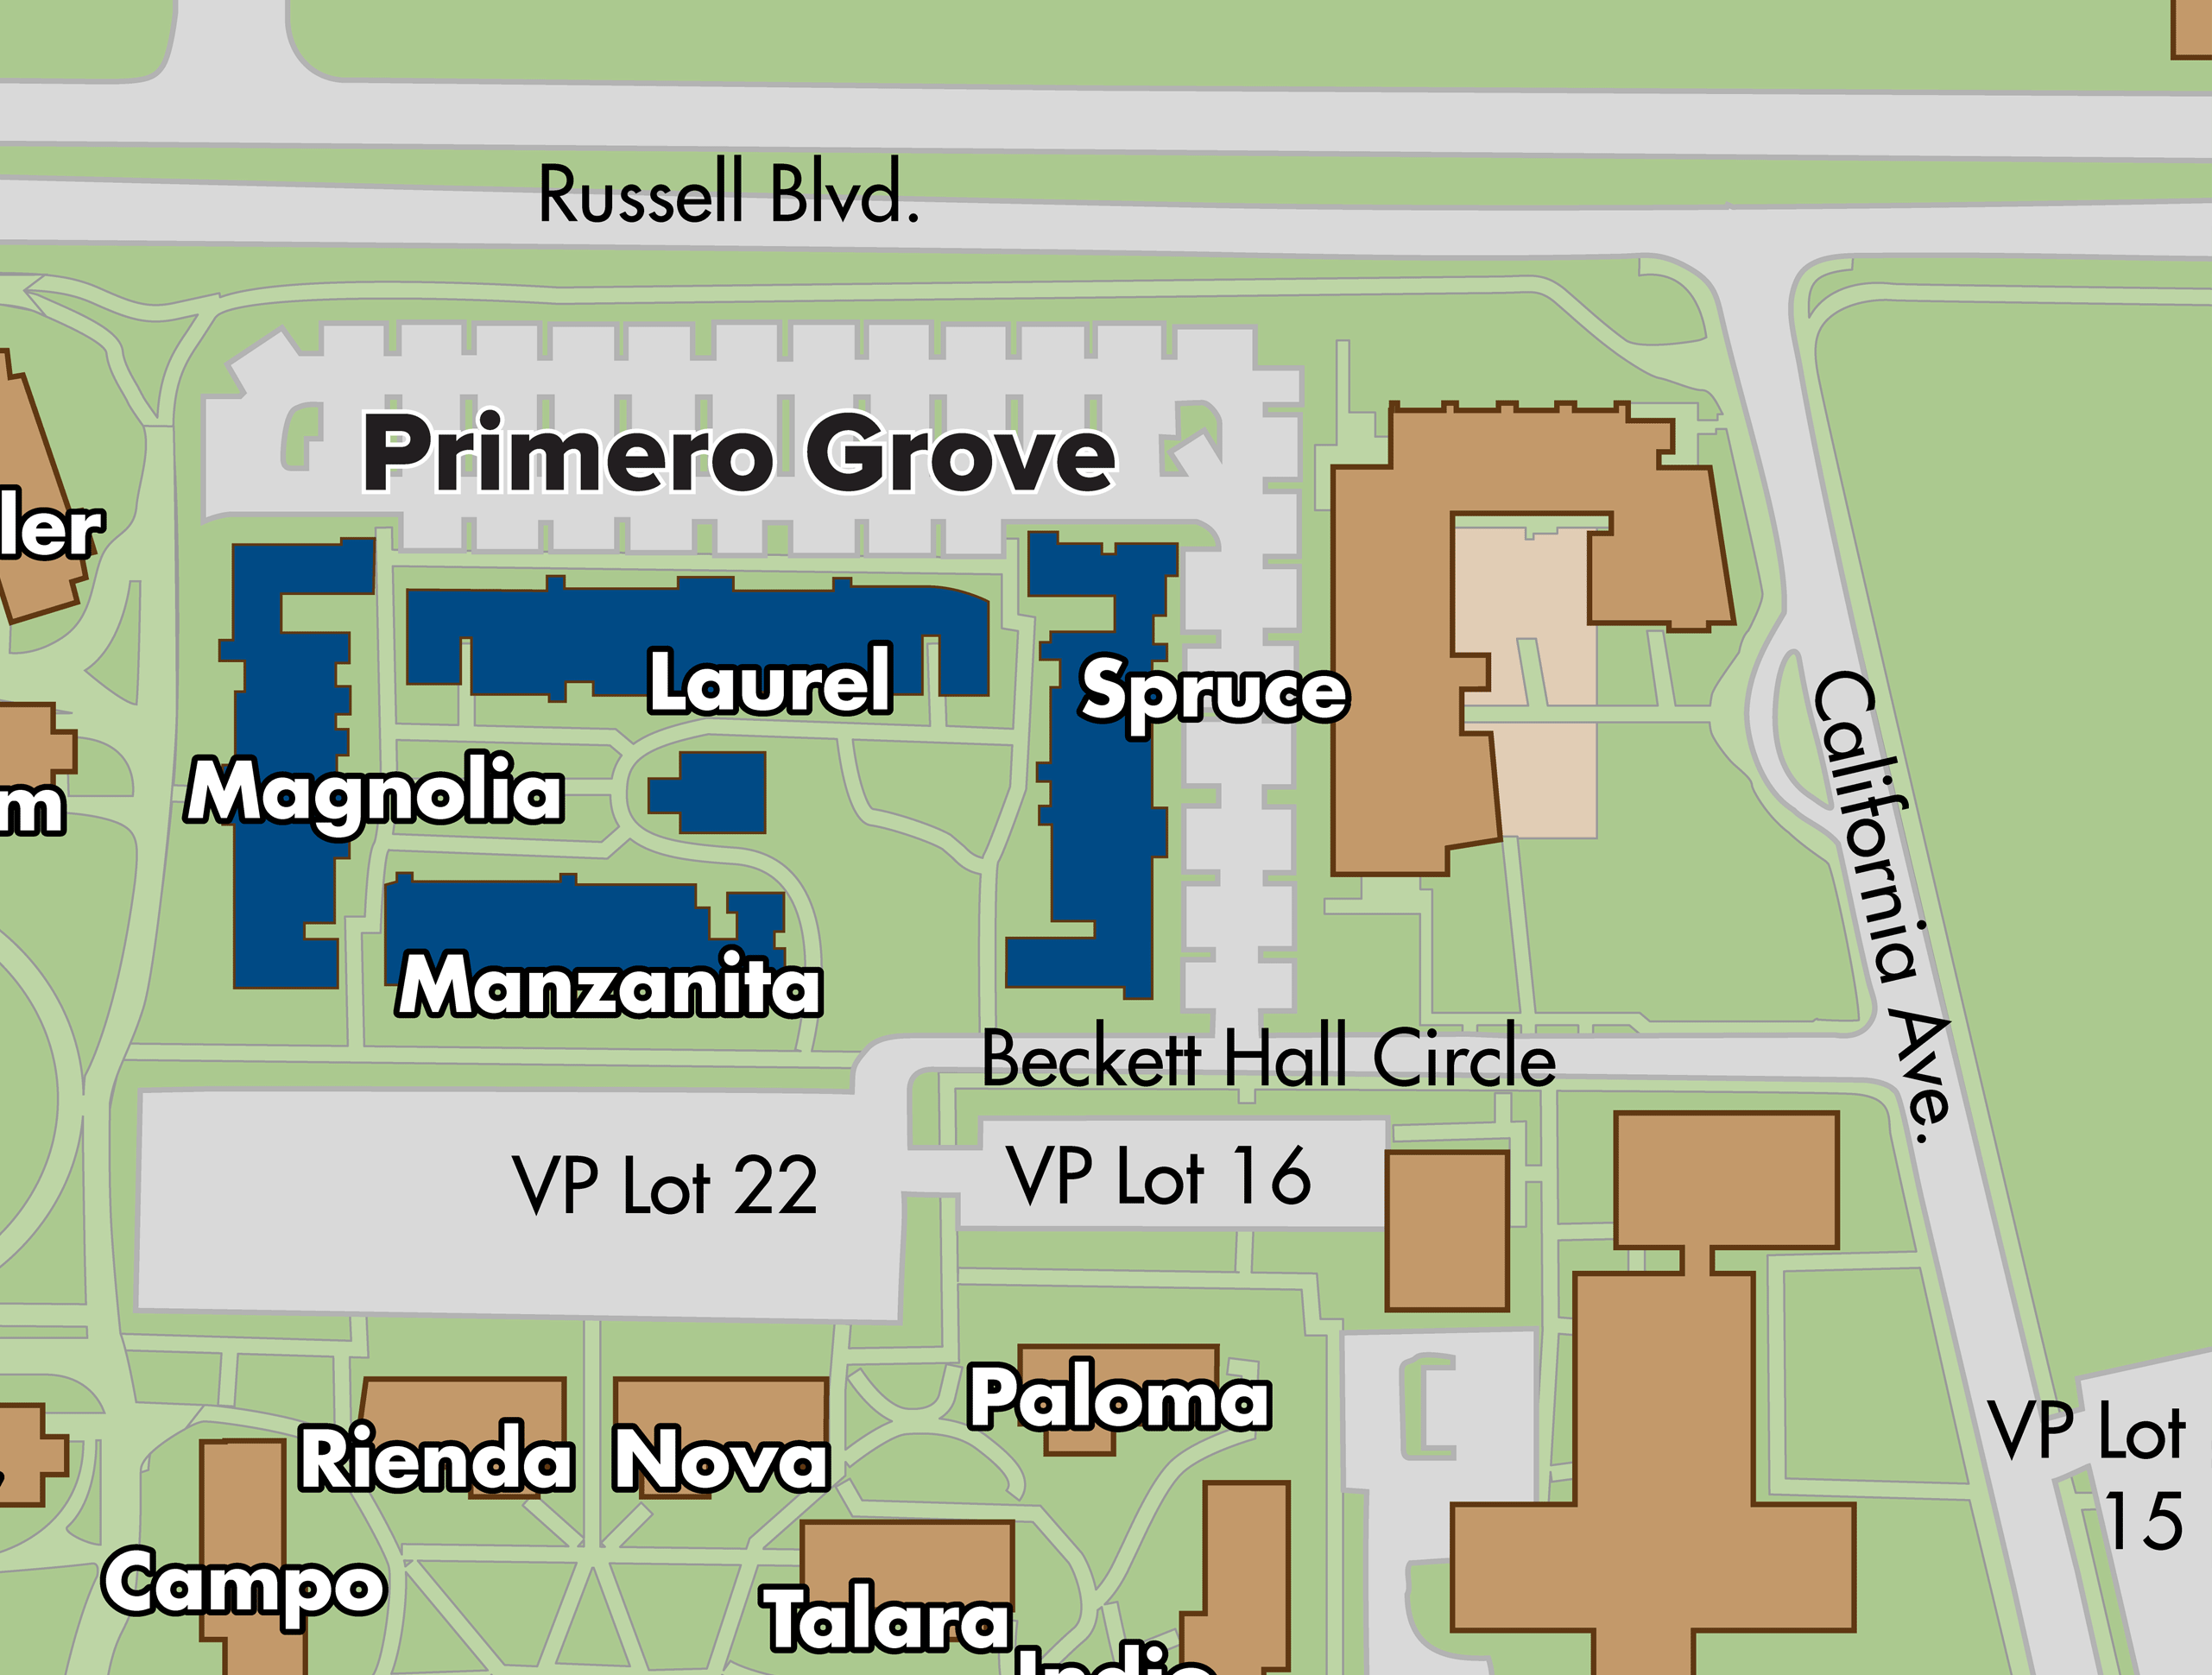 Map of Primero Grove apartments